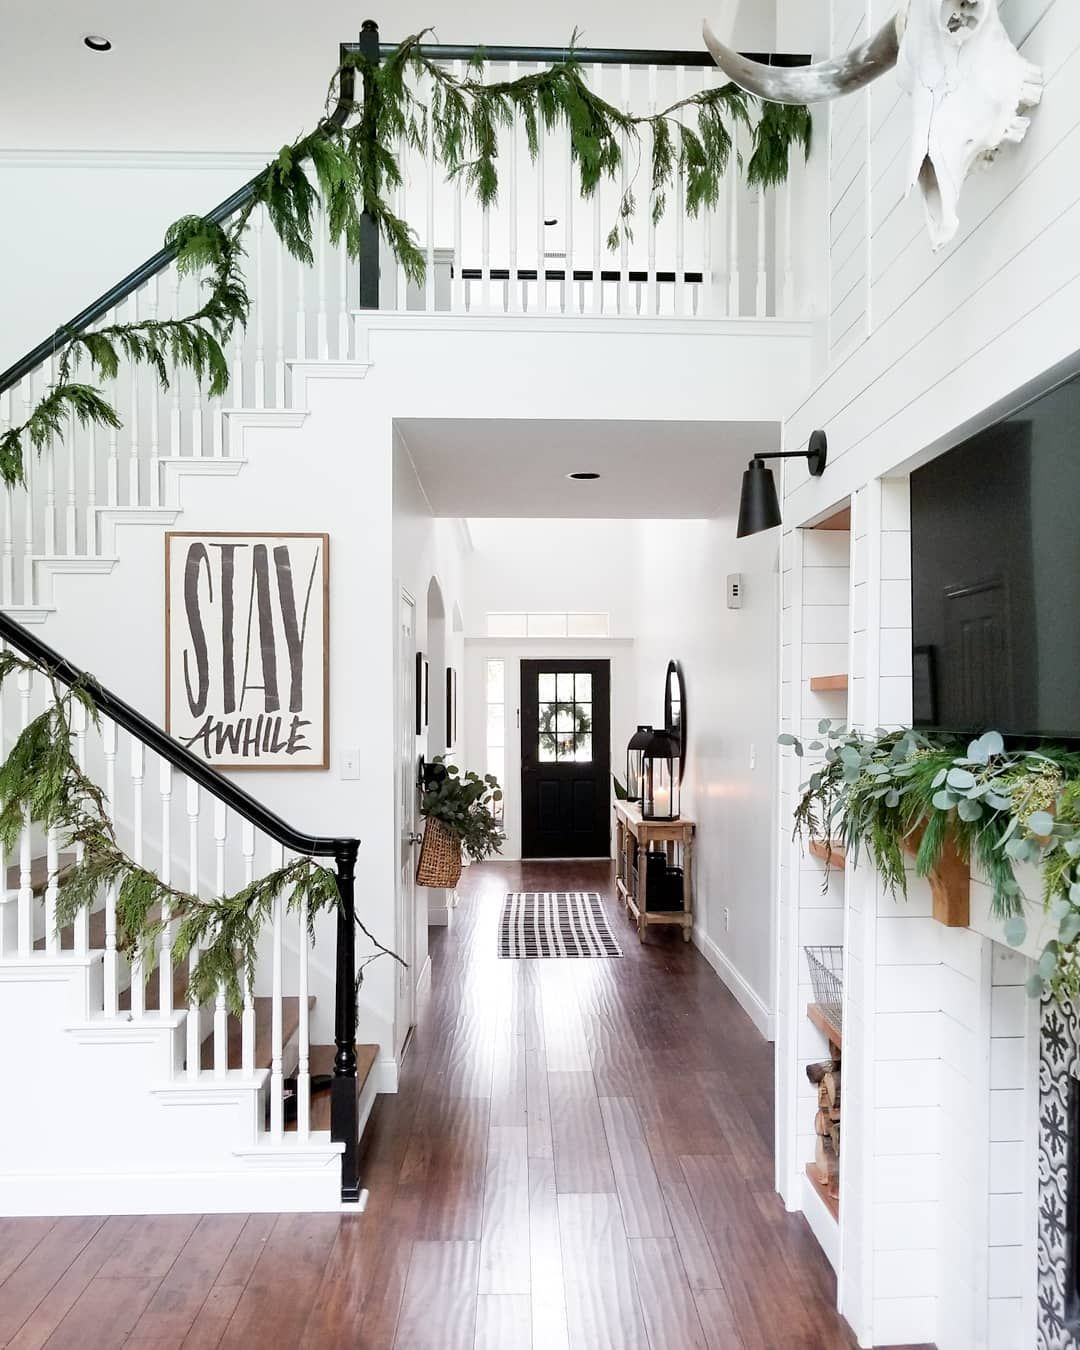 100 Awesome Christmas Stairs Decoration Ideas: Farmhouse Christmas Entry With Simple Greenery #shiplap